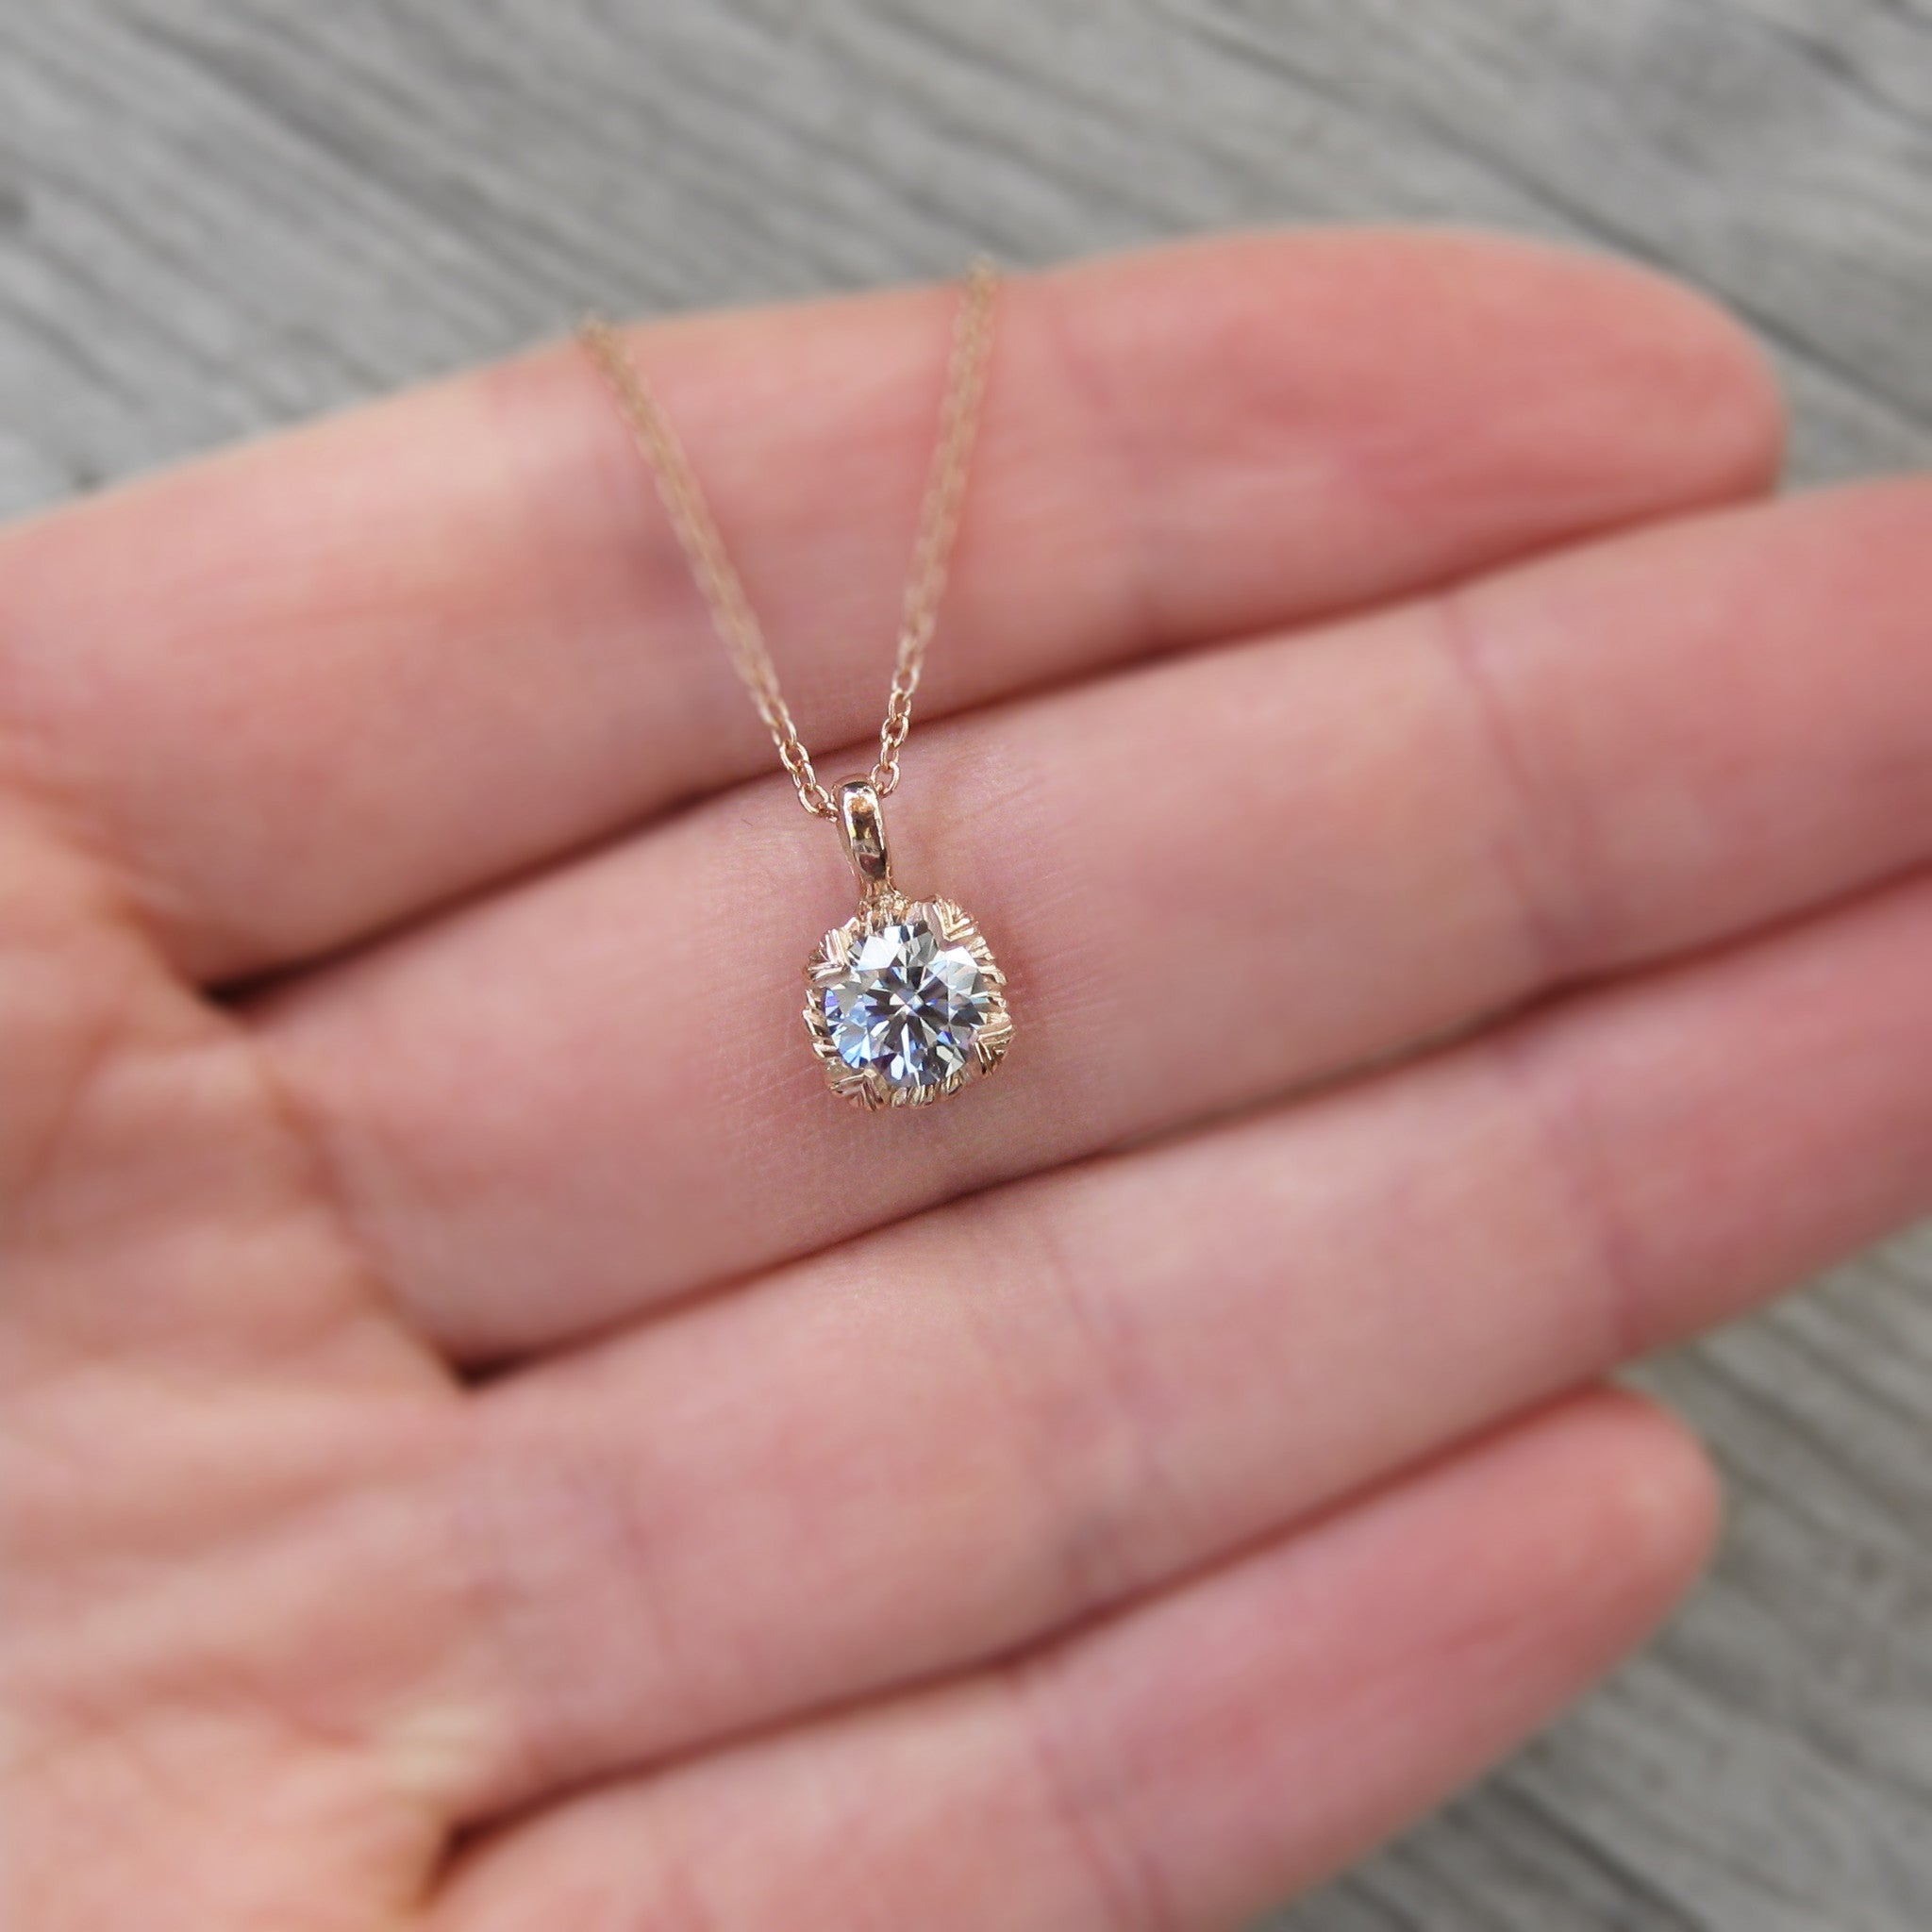 pendant pendants necklaces moissanite view jewelry